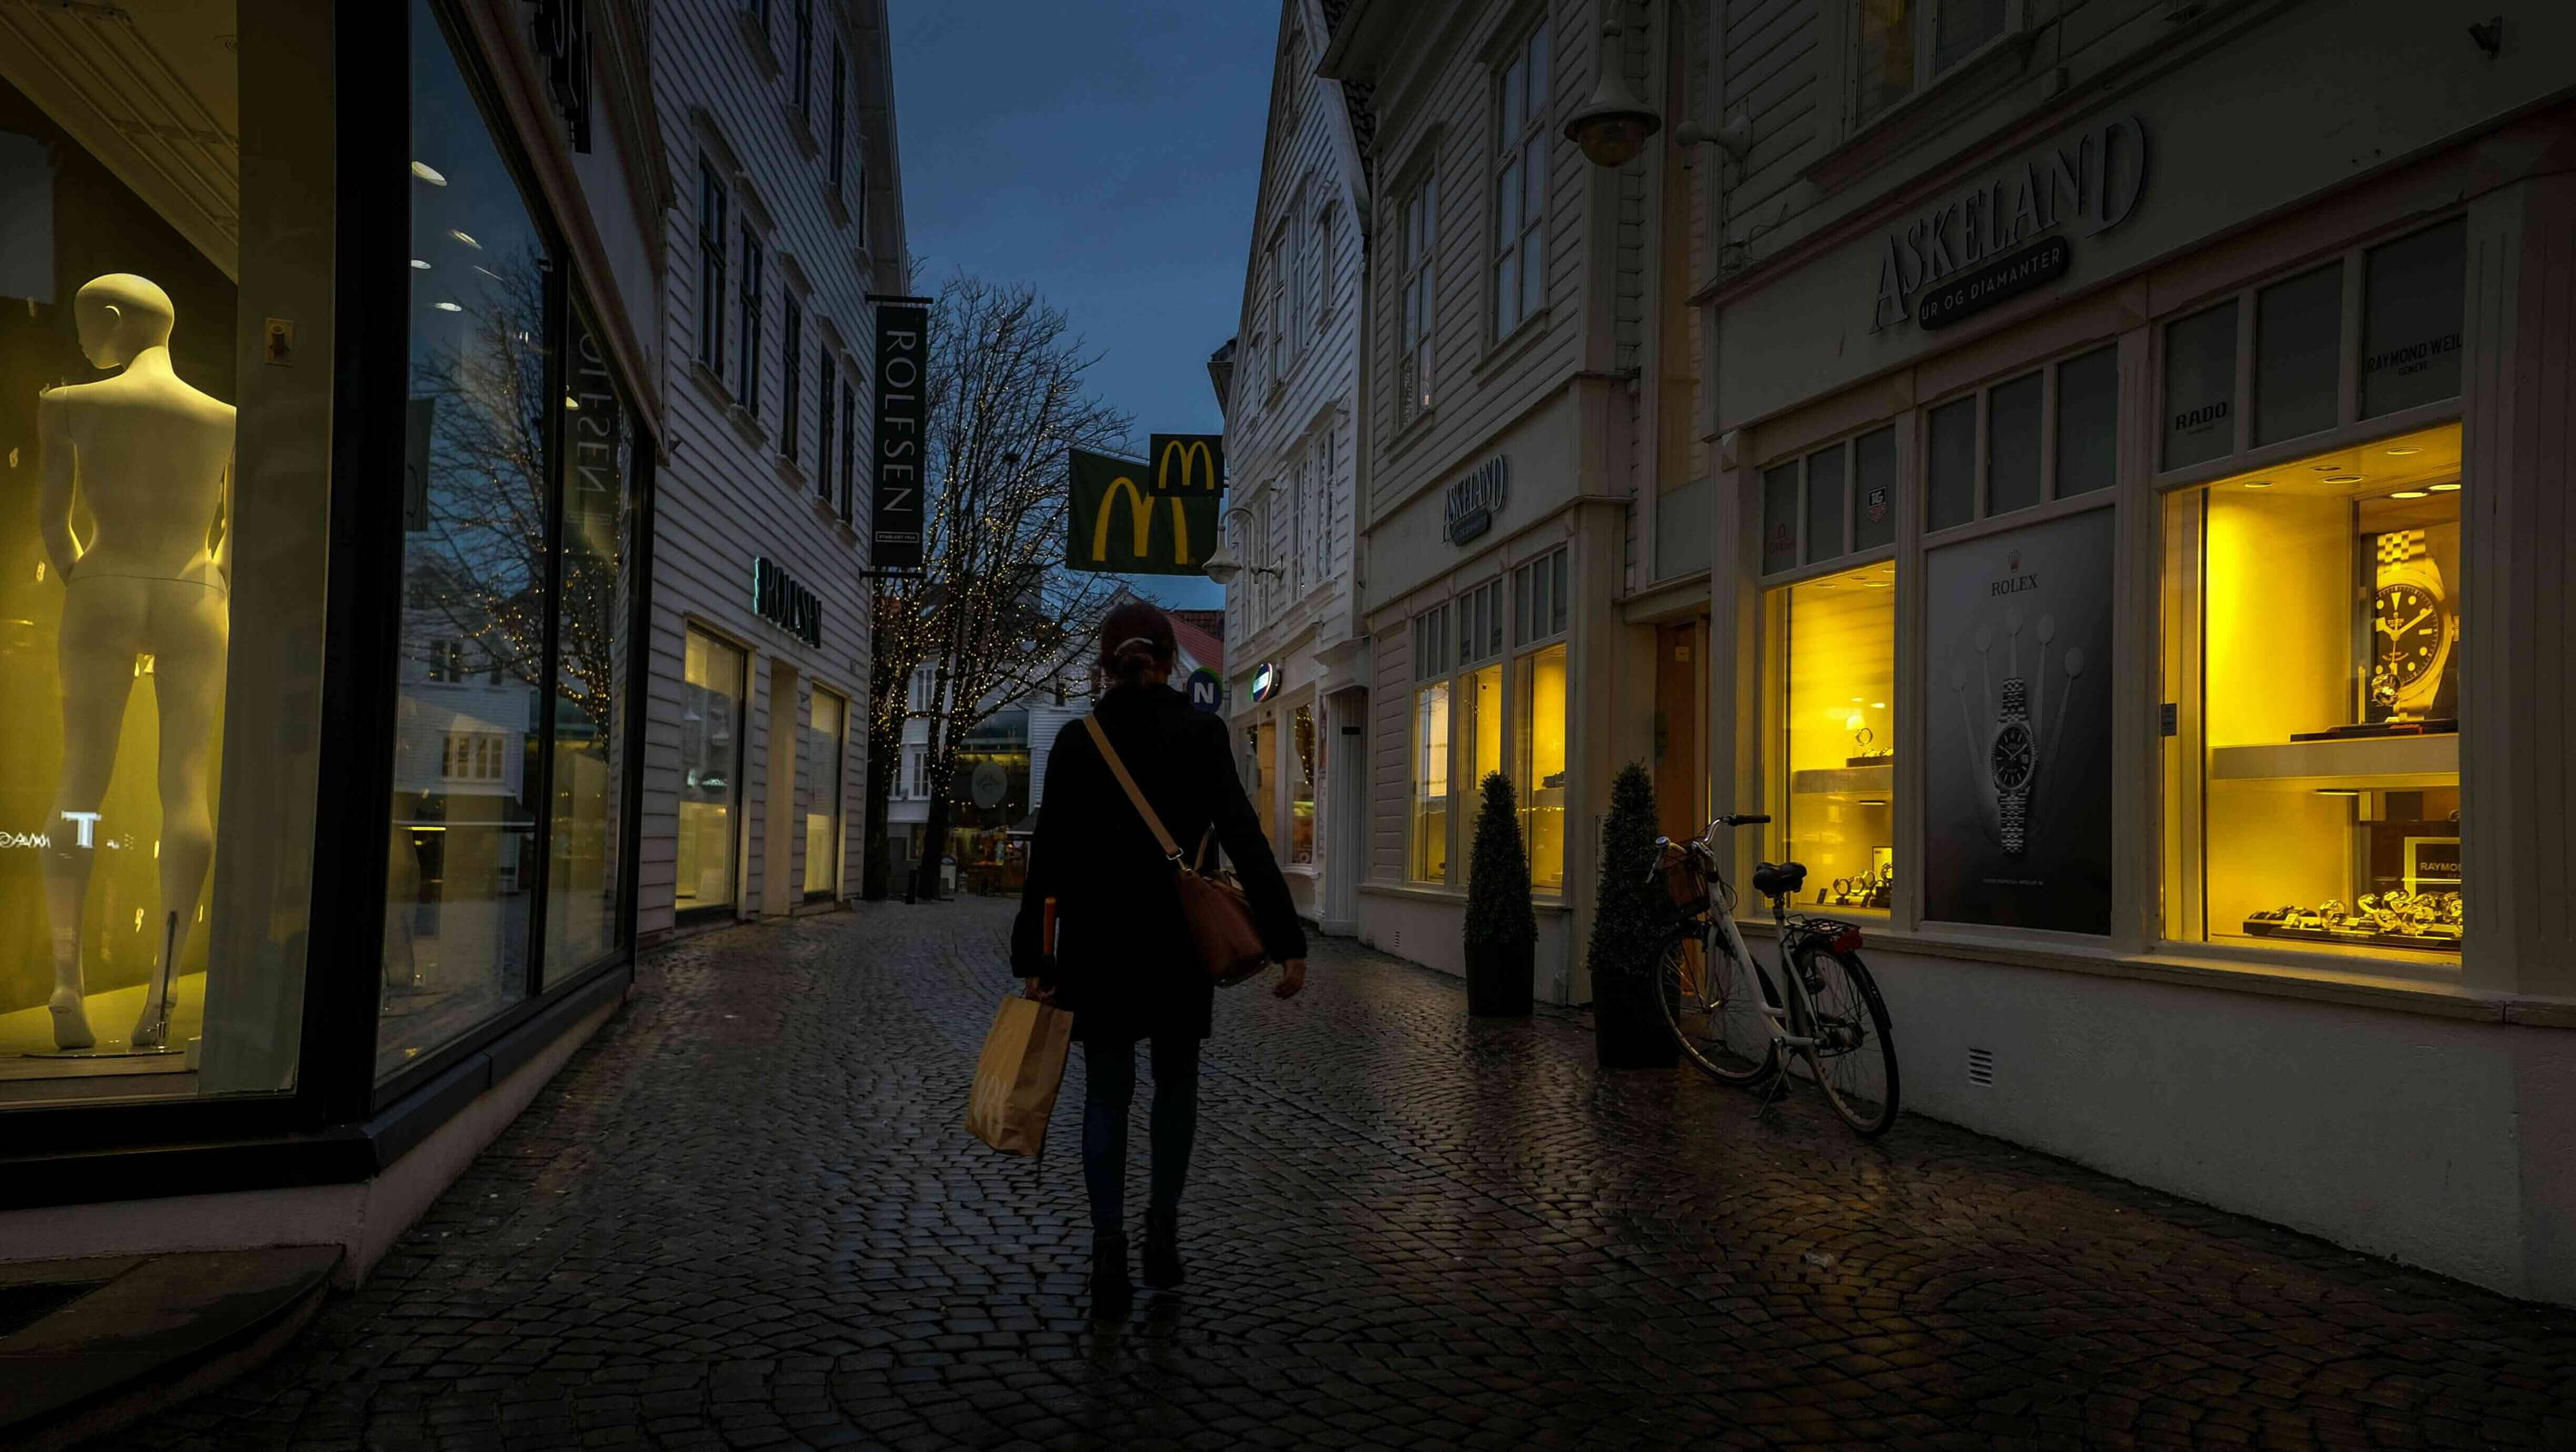 Lady walking through the high street at night past shops to stay safe alone